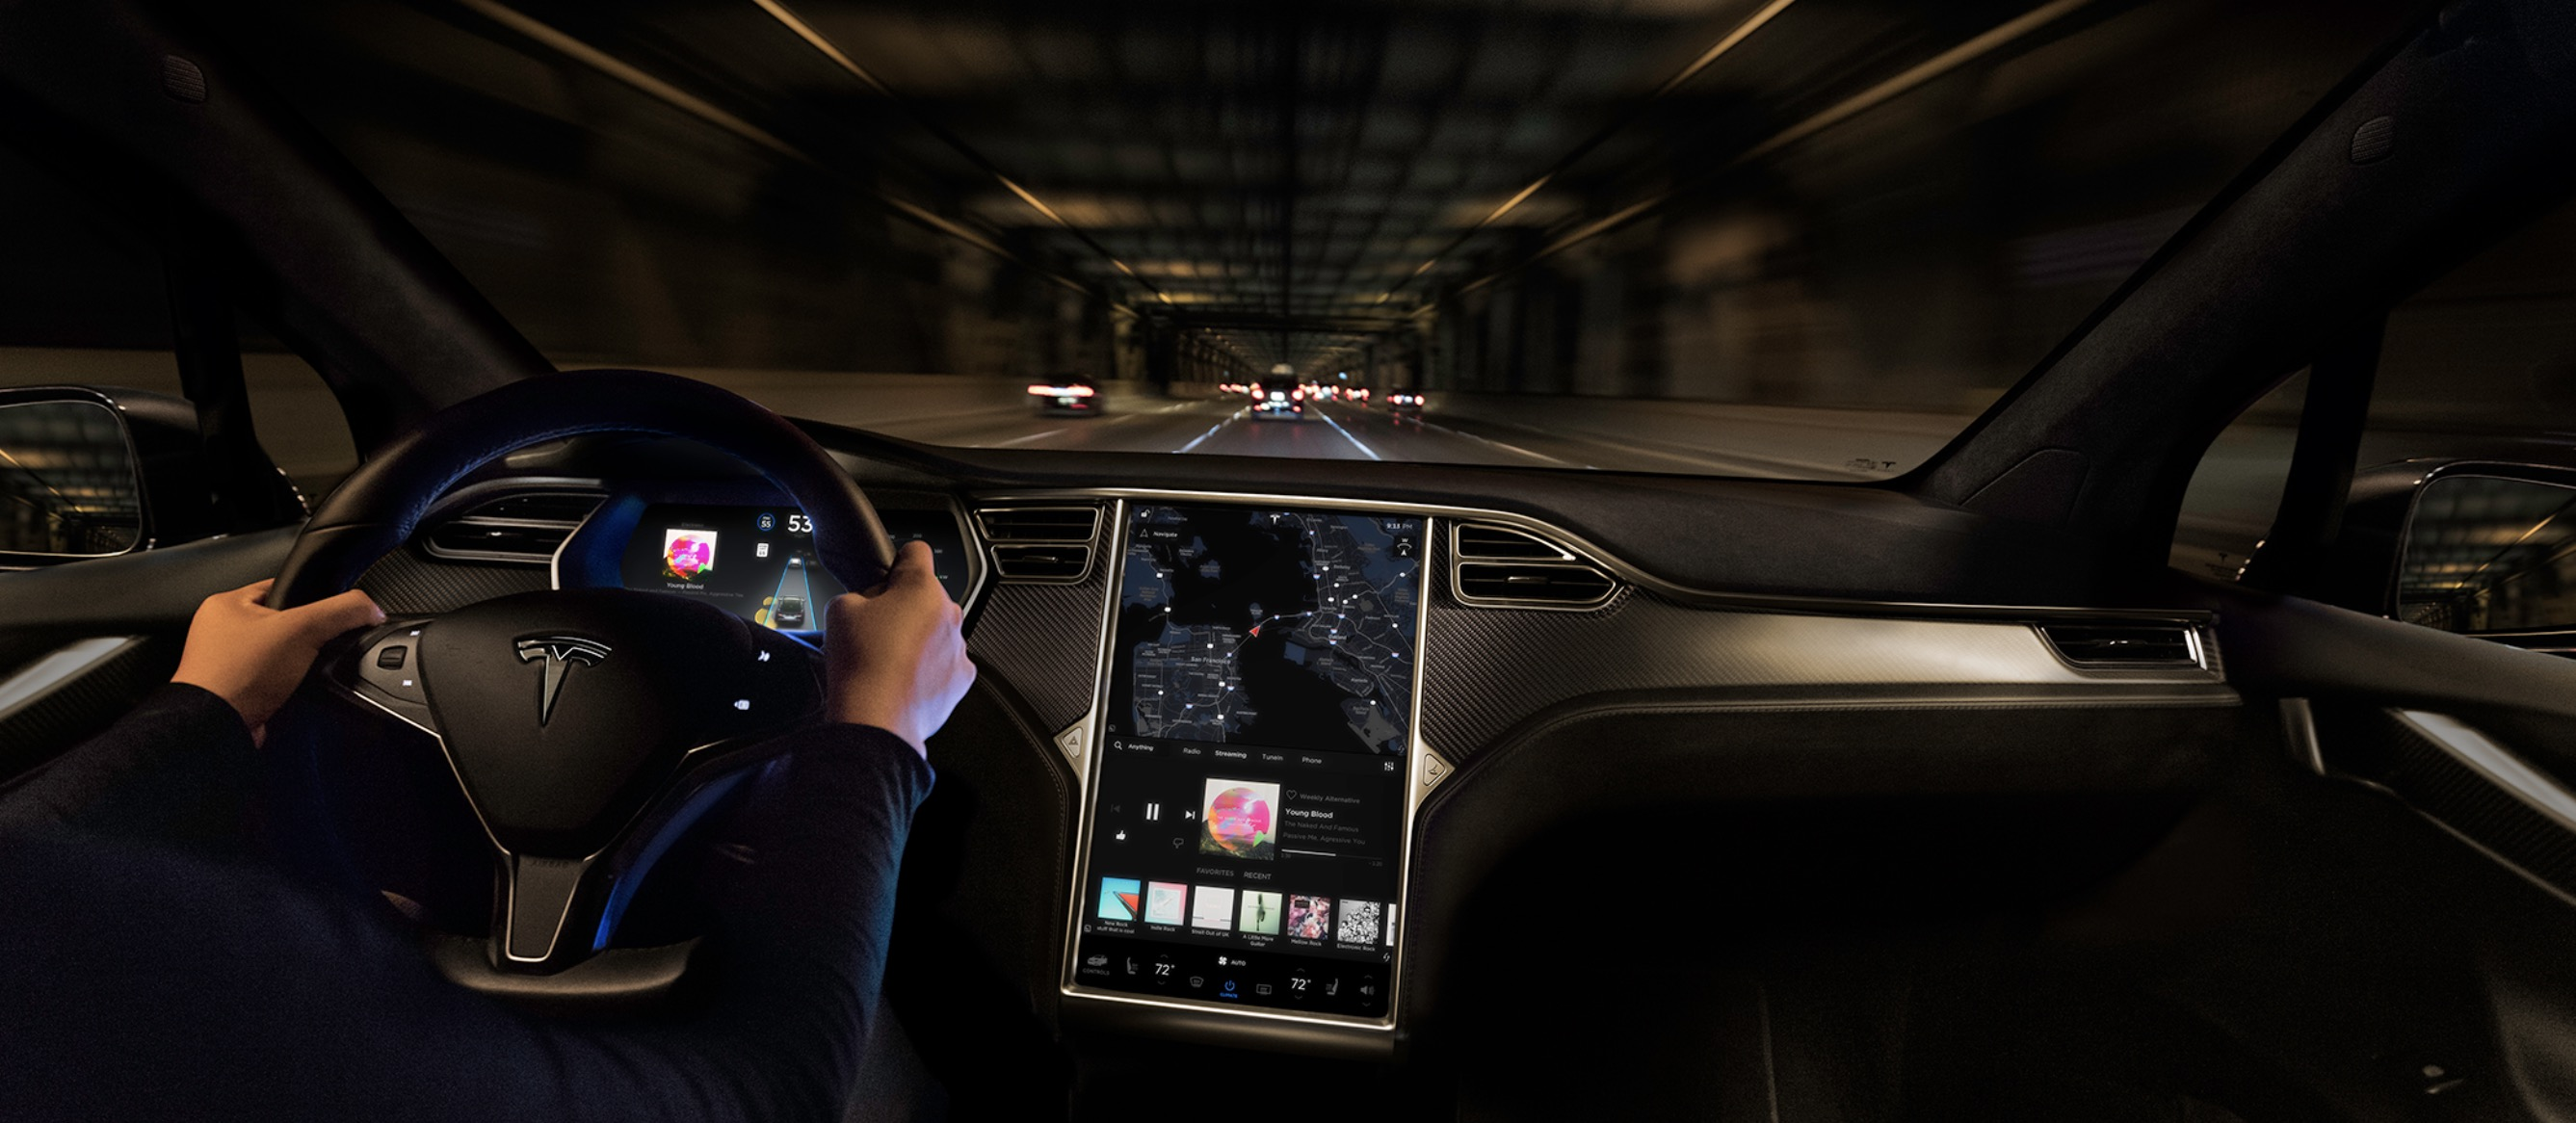 Tesla Is Rolling Out Extra Layer Of Security With